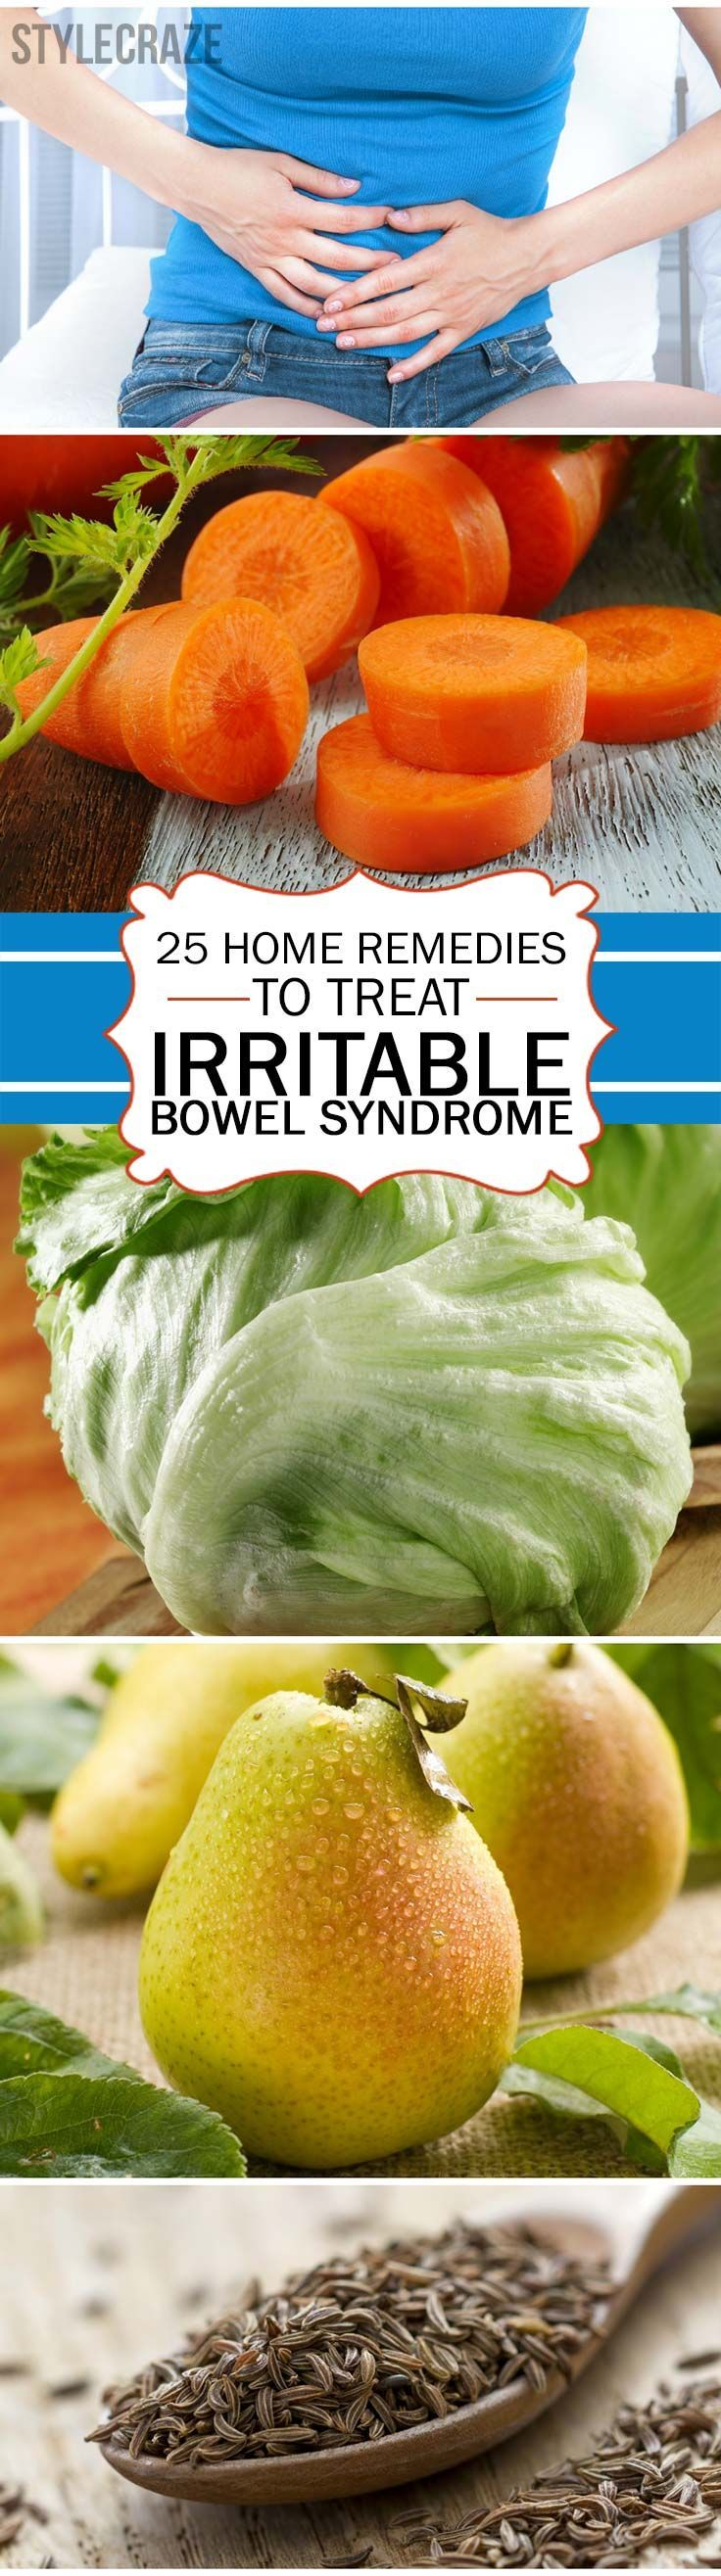 13 Quick Home Remedies To Get Relief From Constipation Naturally forecasting